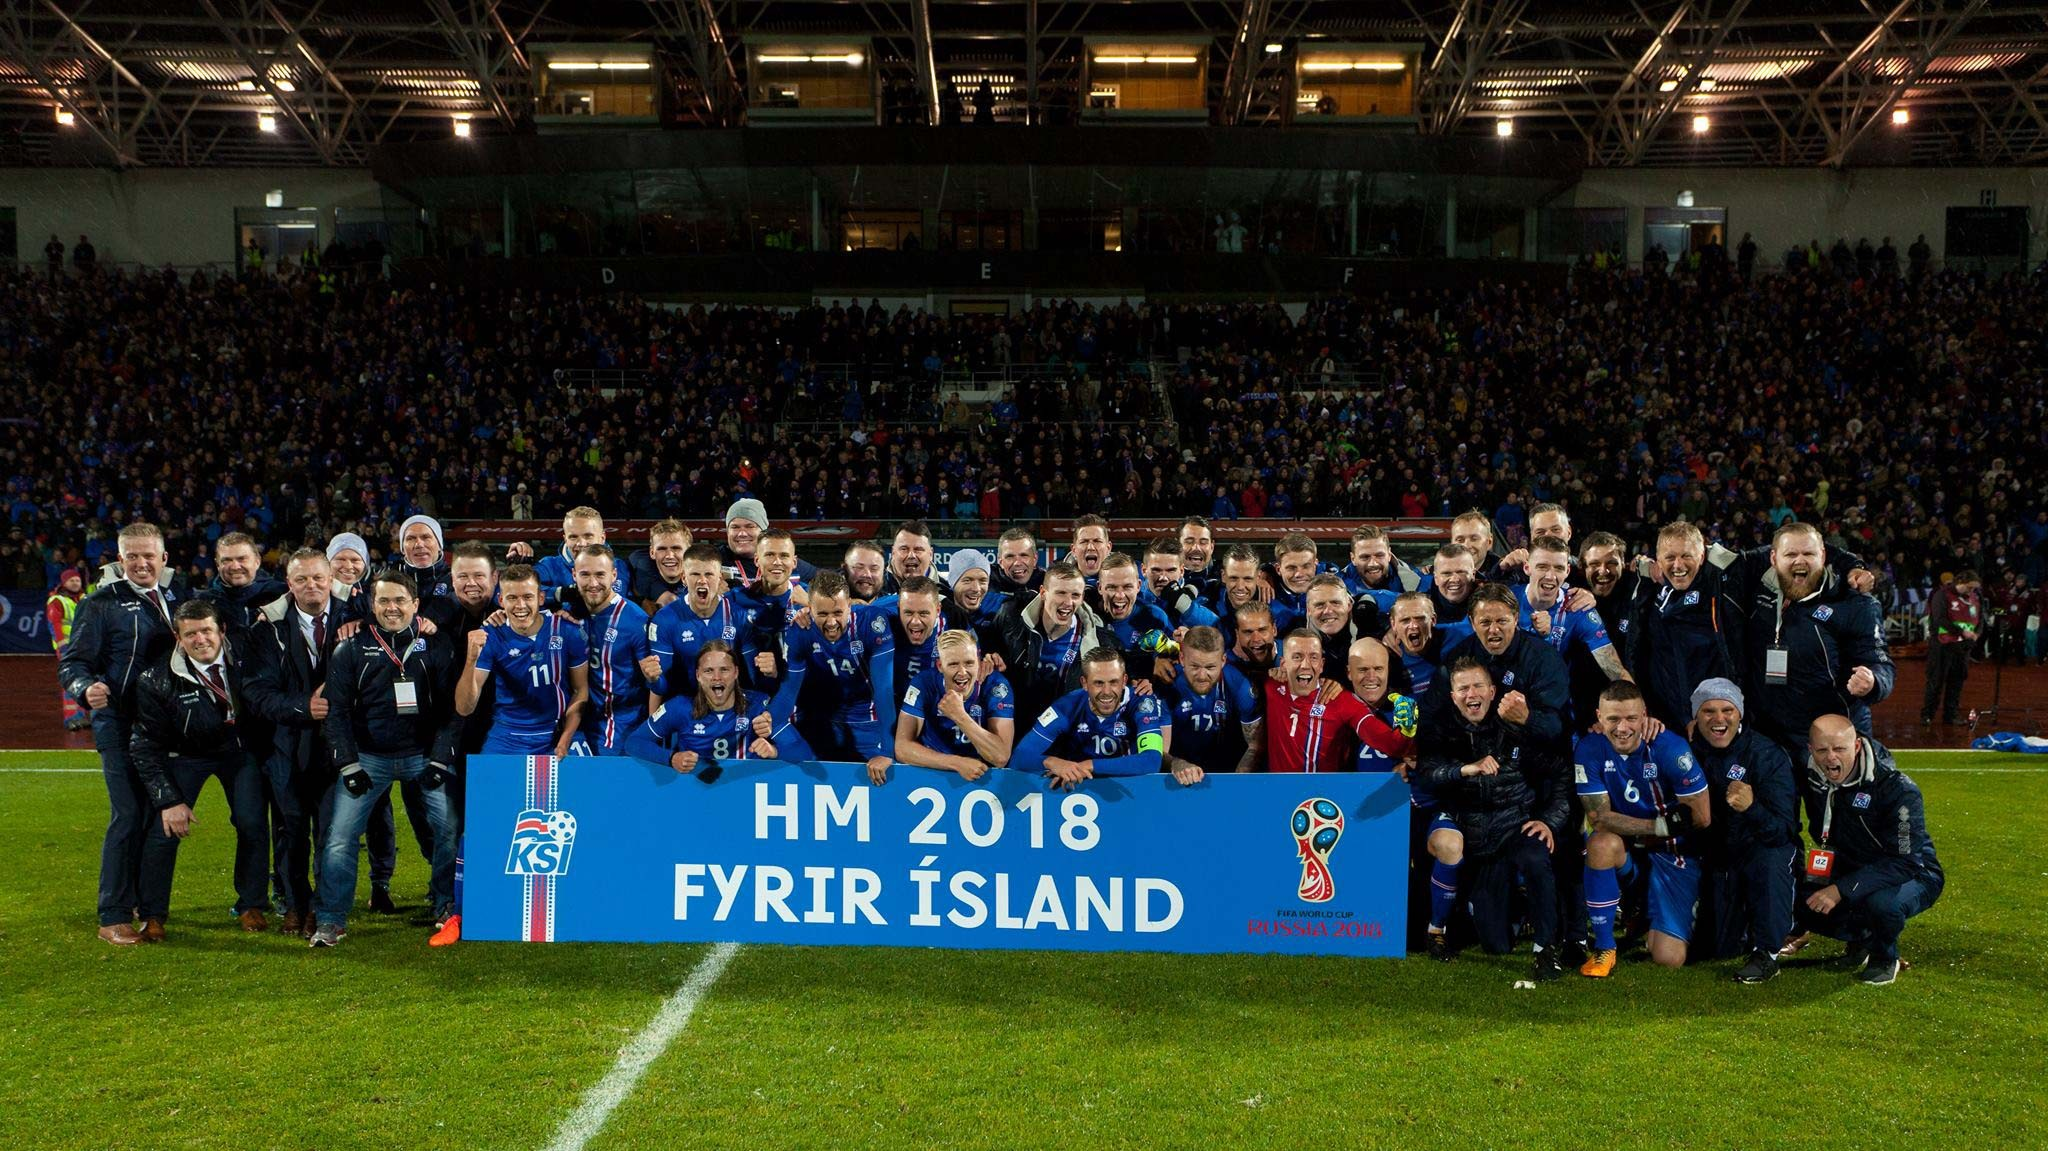 A brilliant Iceland qualifies for the 2018 World Cup in Russia!!!